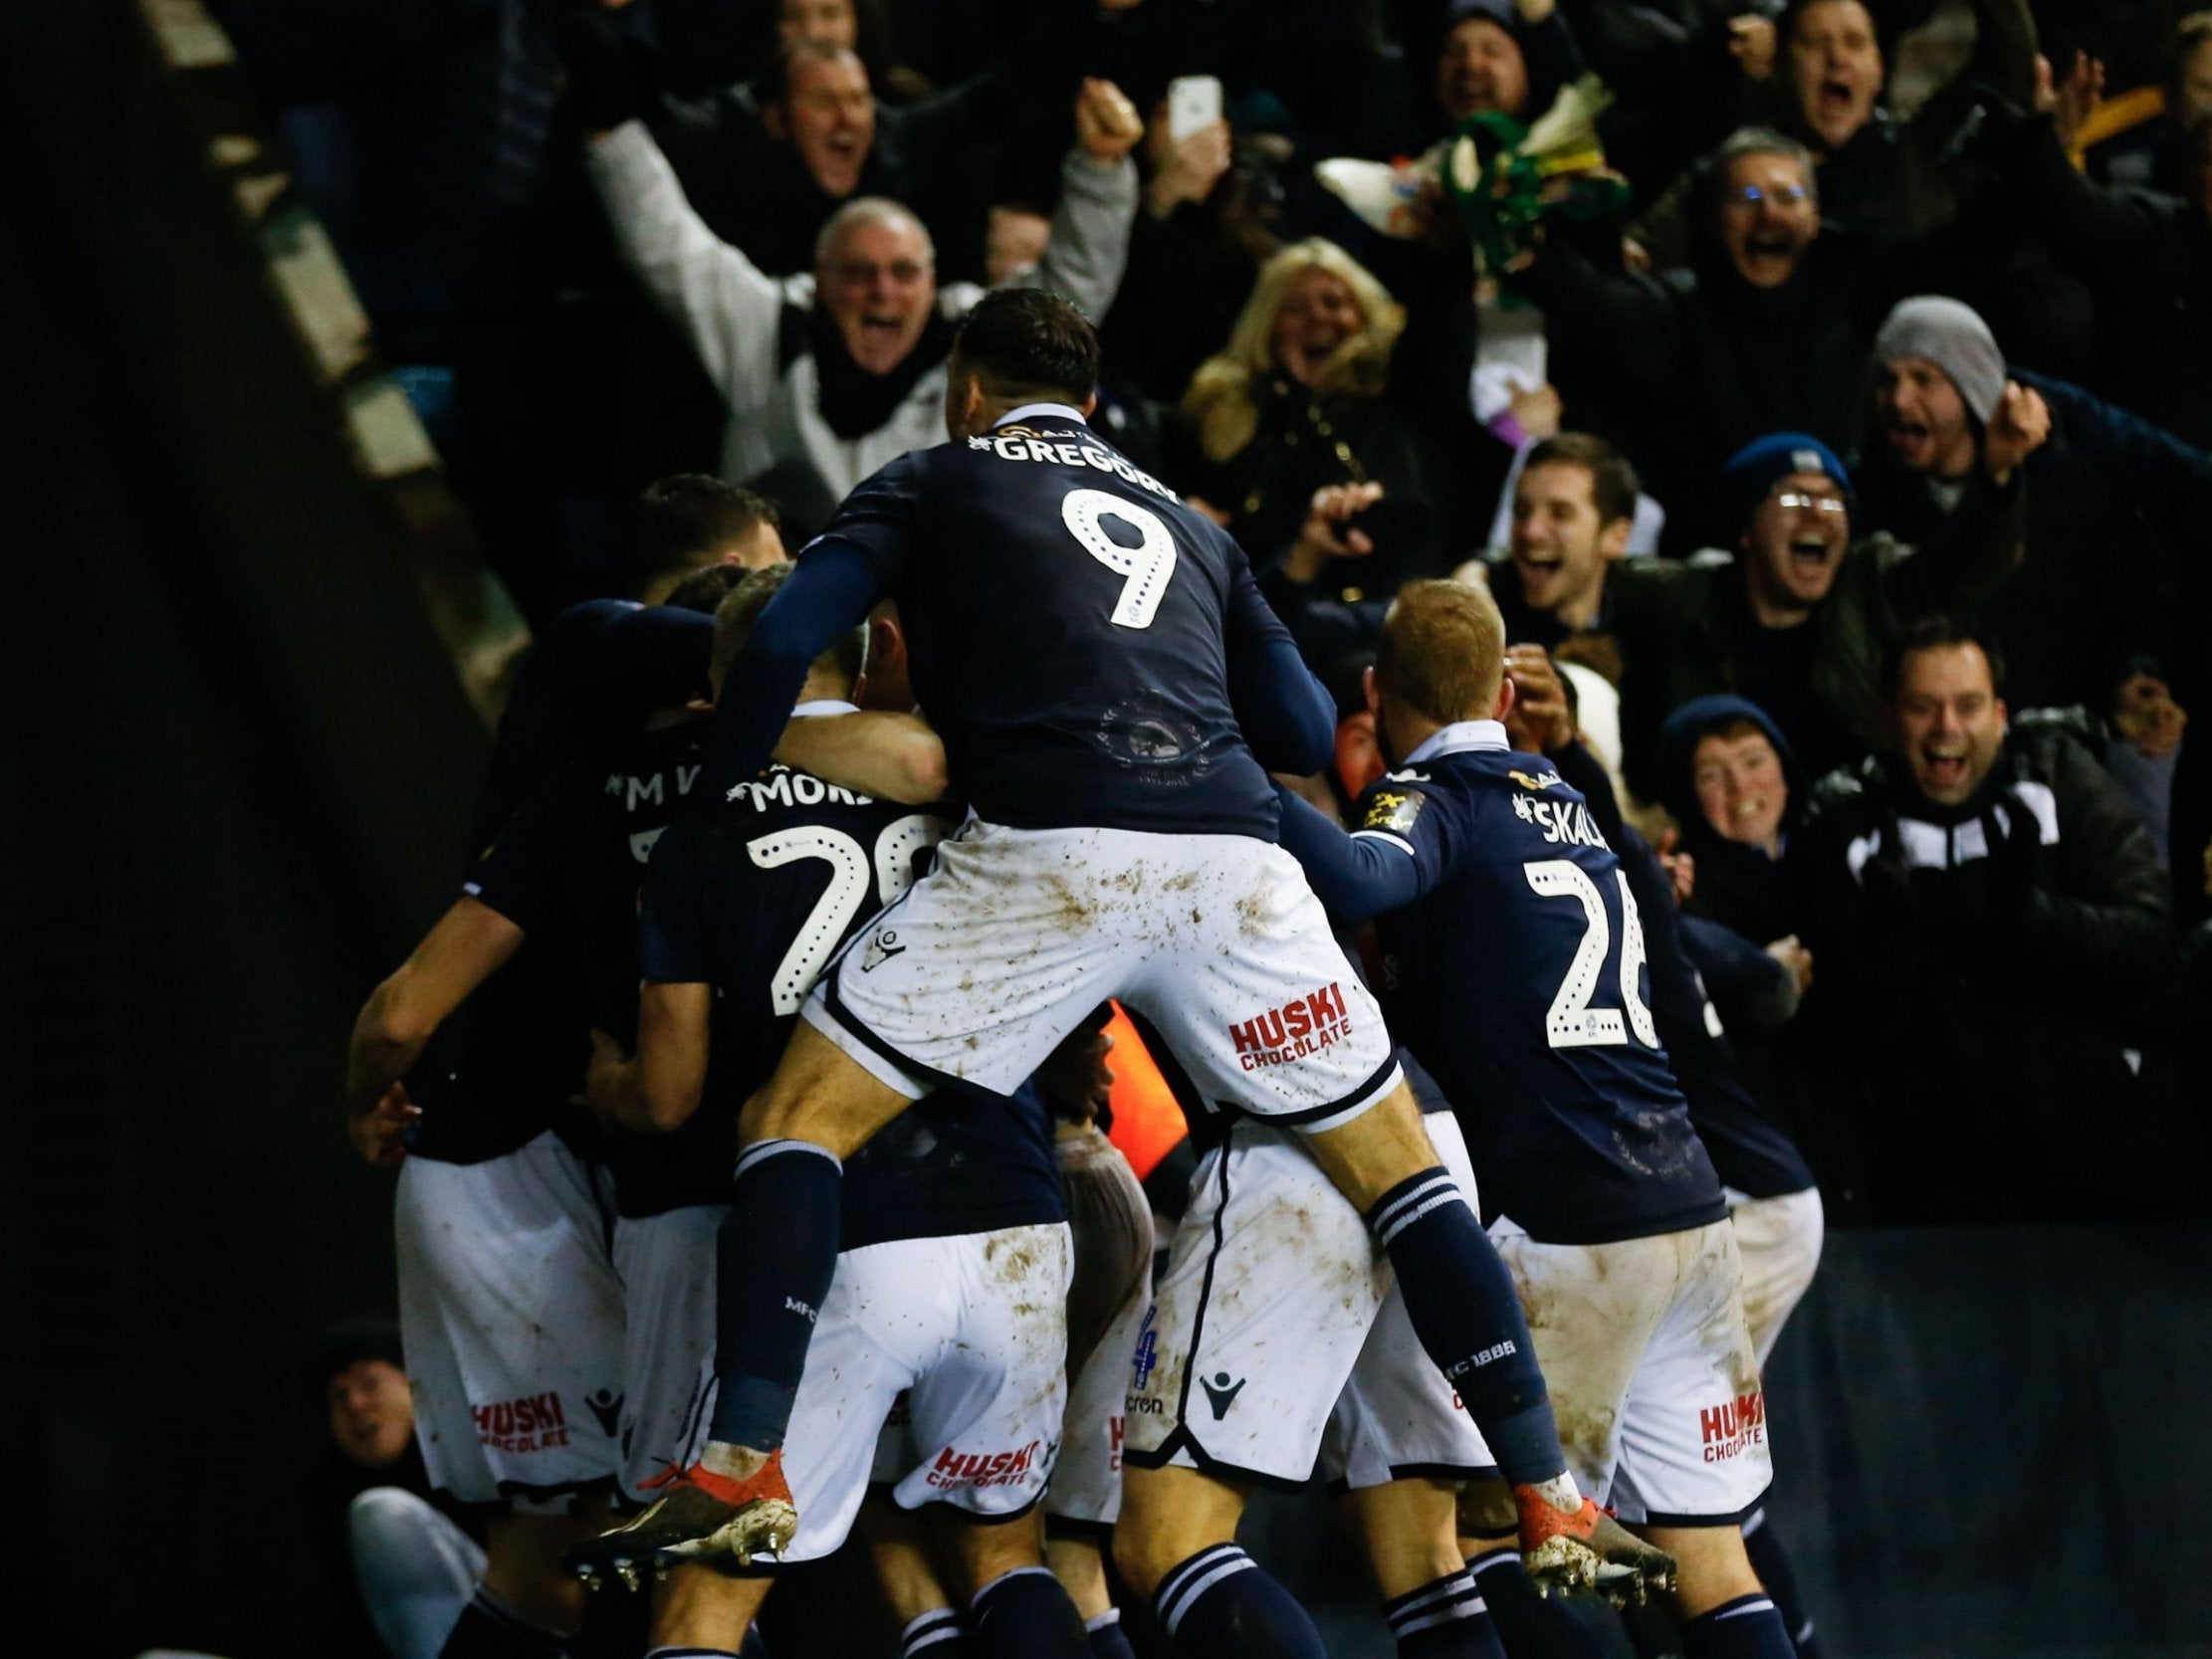 Millwall vs Everton: Alleged racist chanting at FA Cup tie being investigated by The FA